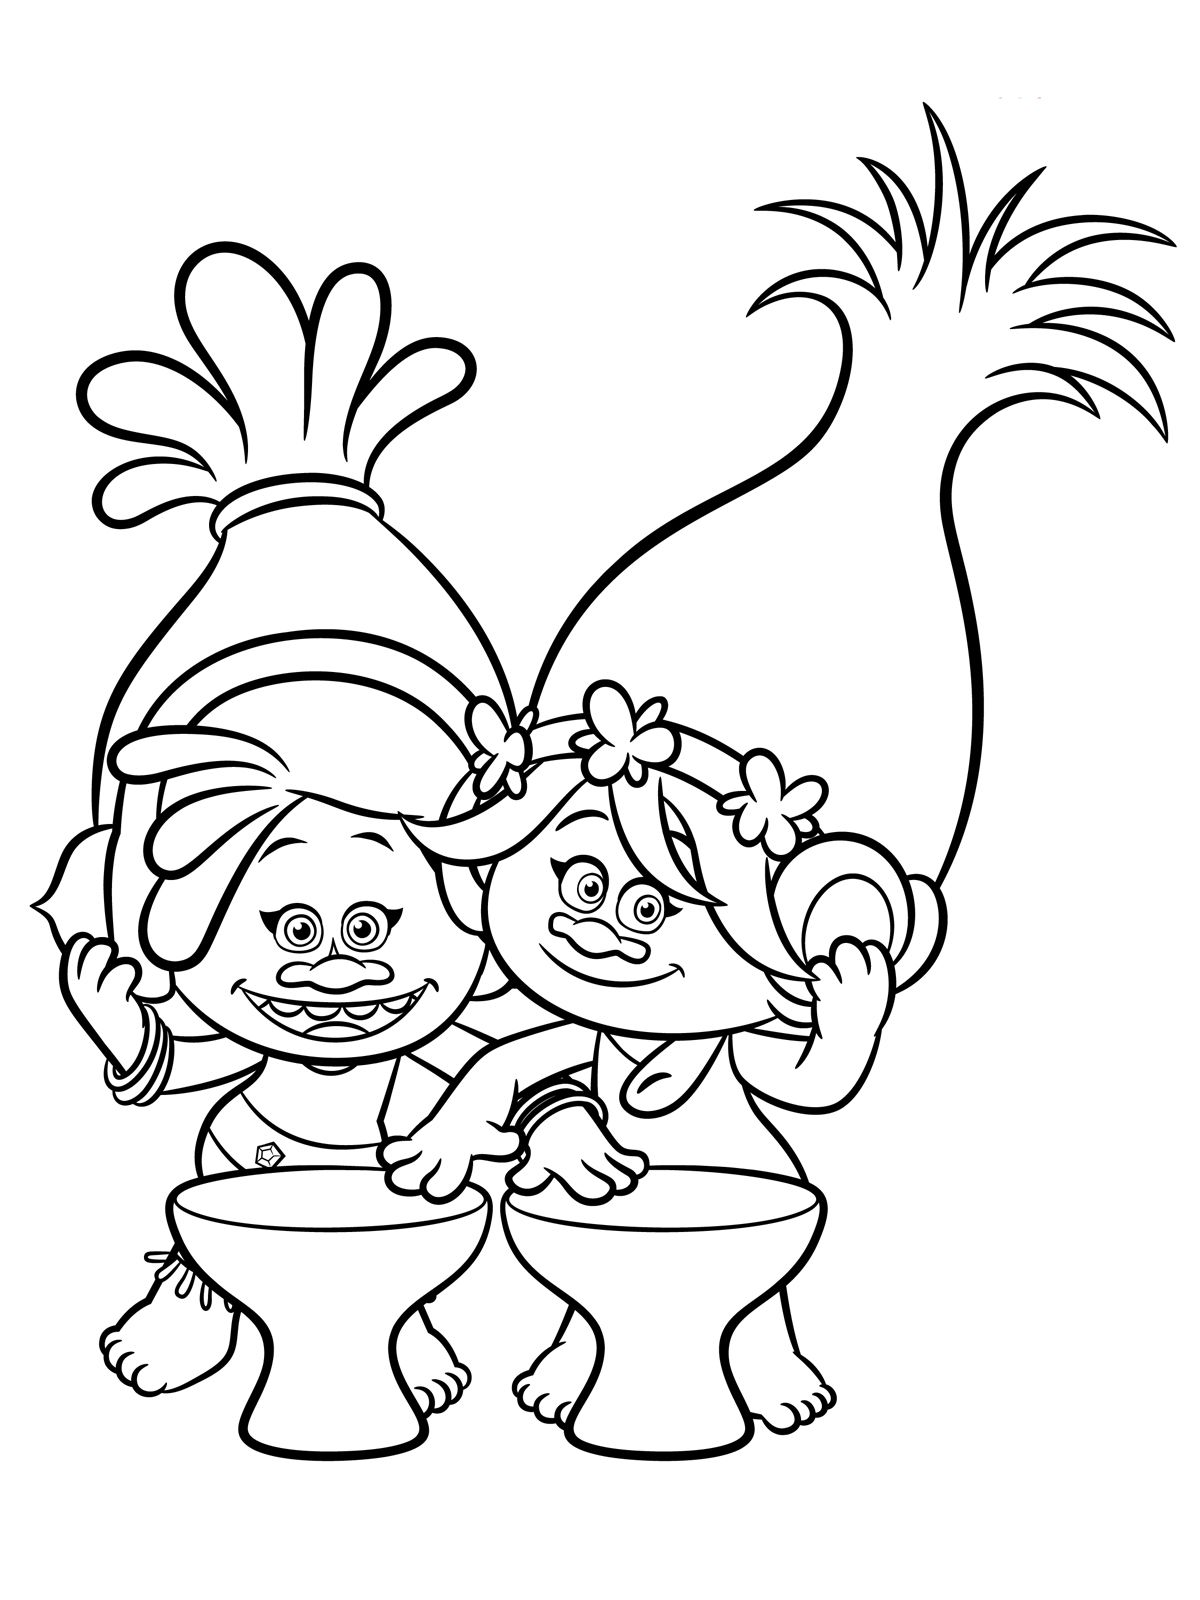 trolls coloring pages to download and print for free - Trolls Coloring Pages